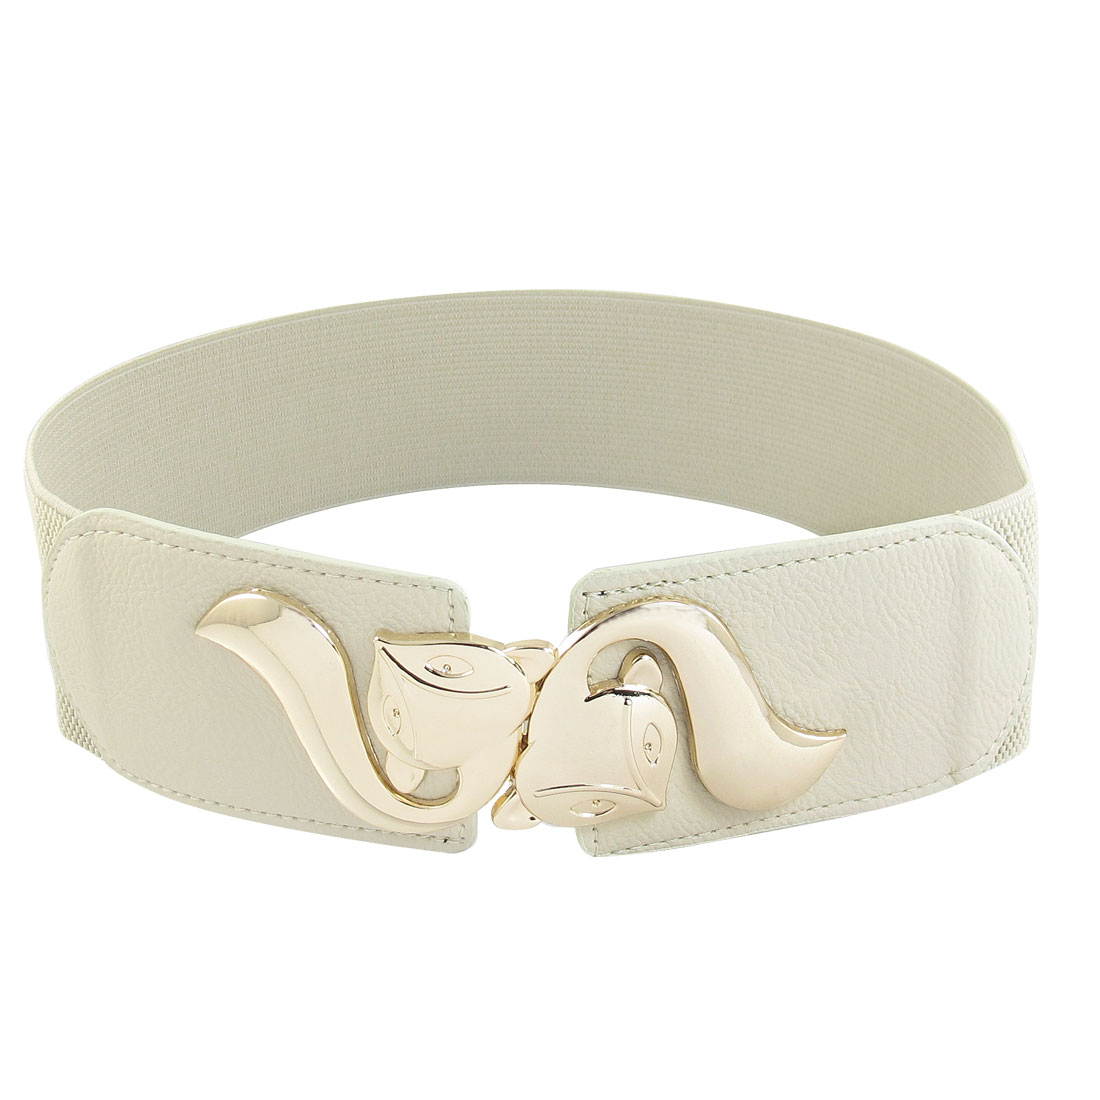 Light Beige Faux Leather Detail Textured Pattern Stretchy Belt for Women